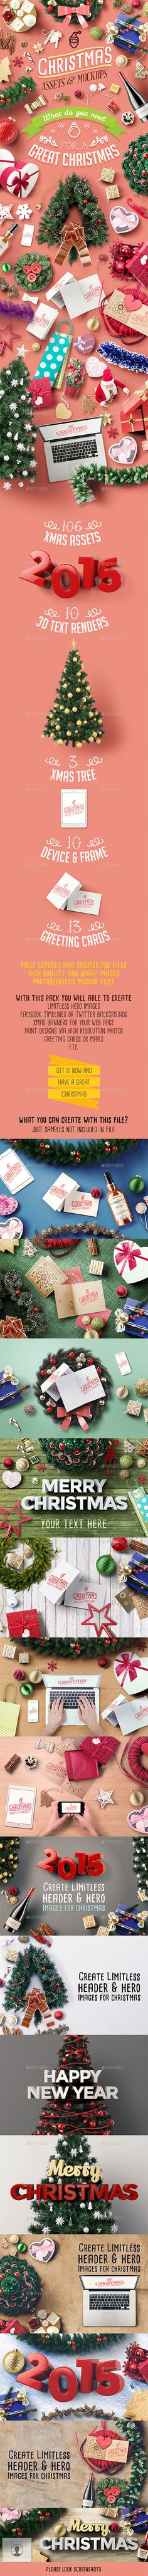 Christmas Assets And Mock Ups — Photoshop PSD #gift #mockup • Available here → https://graphicriver.net/item/christmas-assets-and-mock-ups/9591143?ref=pxcr